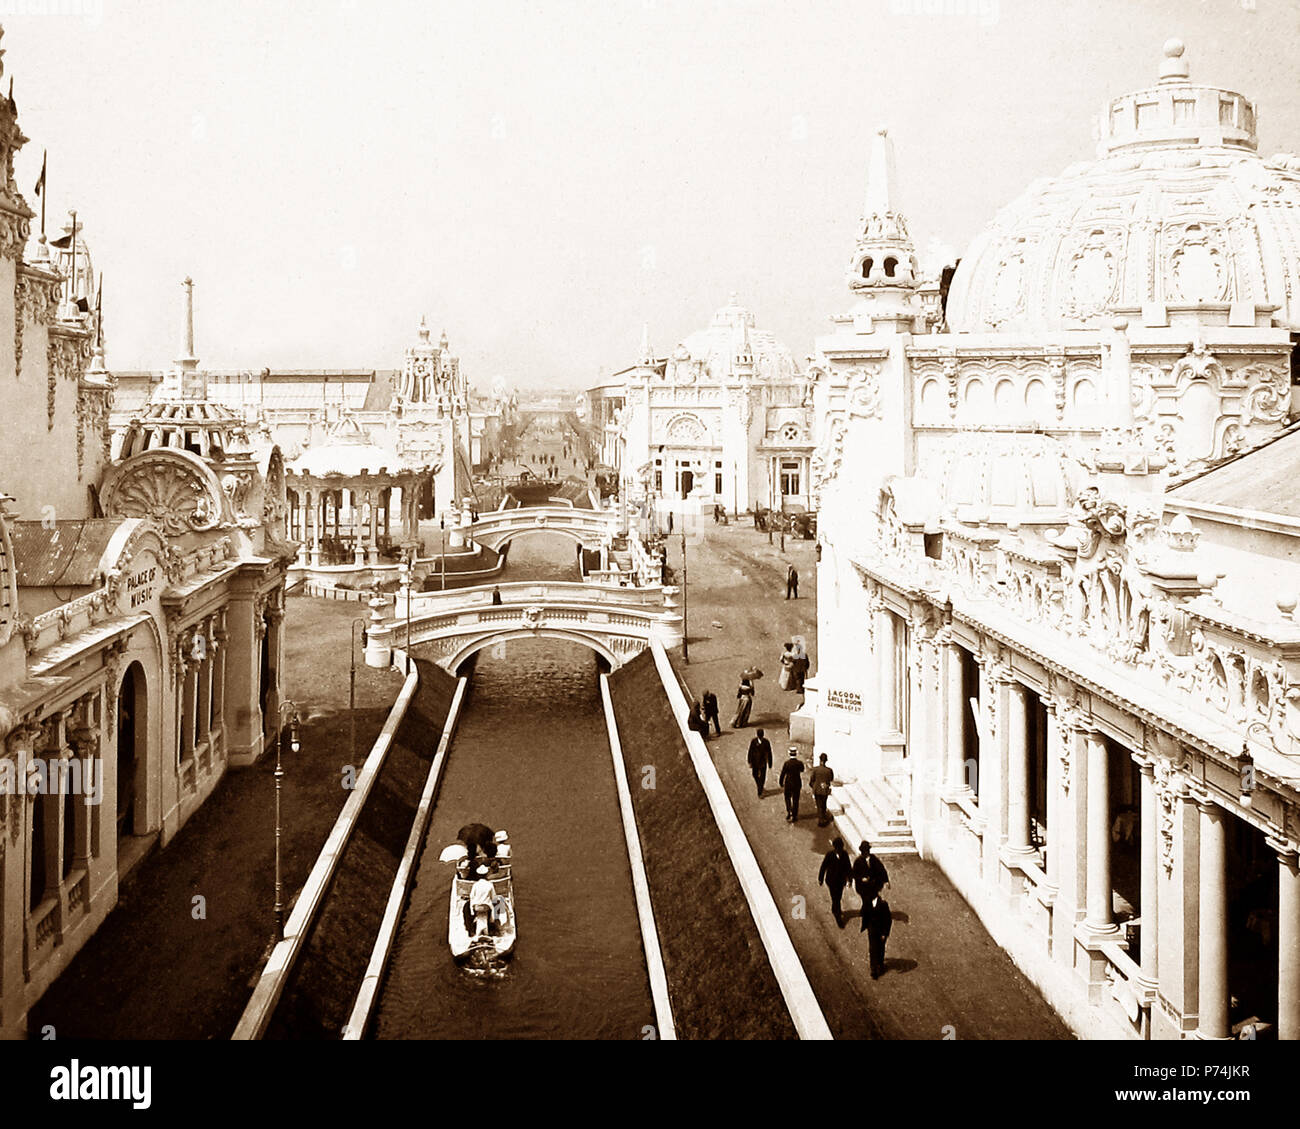 The Imperial Sports Club and Palace of Music, The Franco-British Exhibition at White City, London, in 1908 - Stock Image